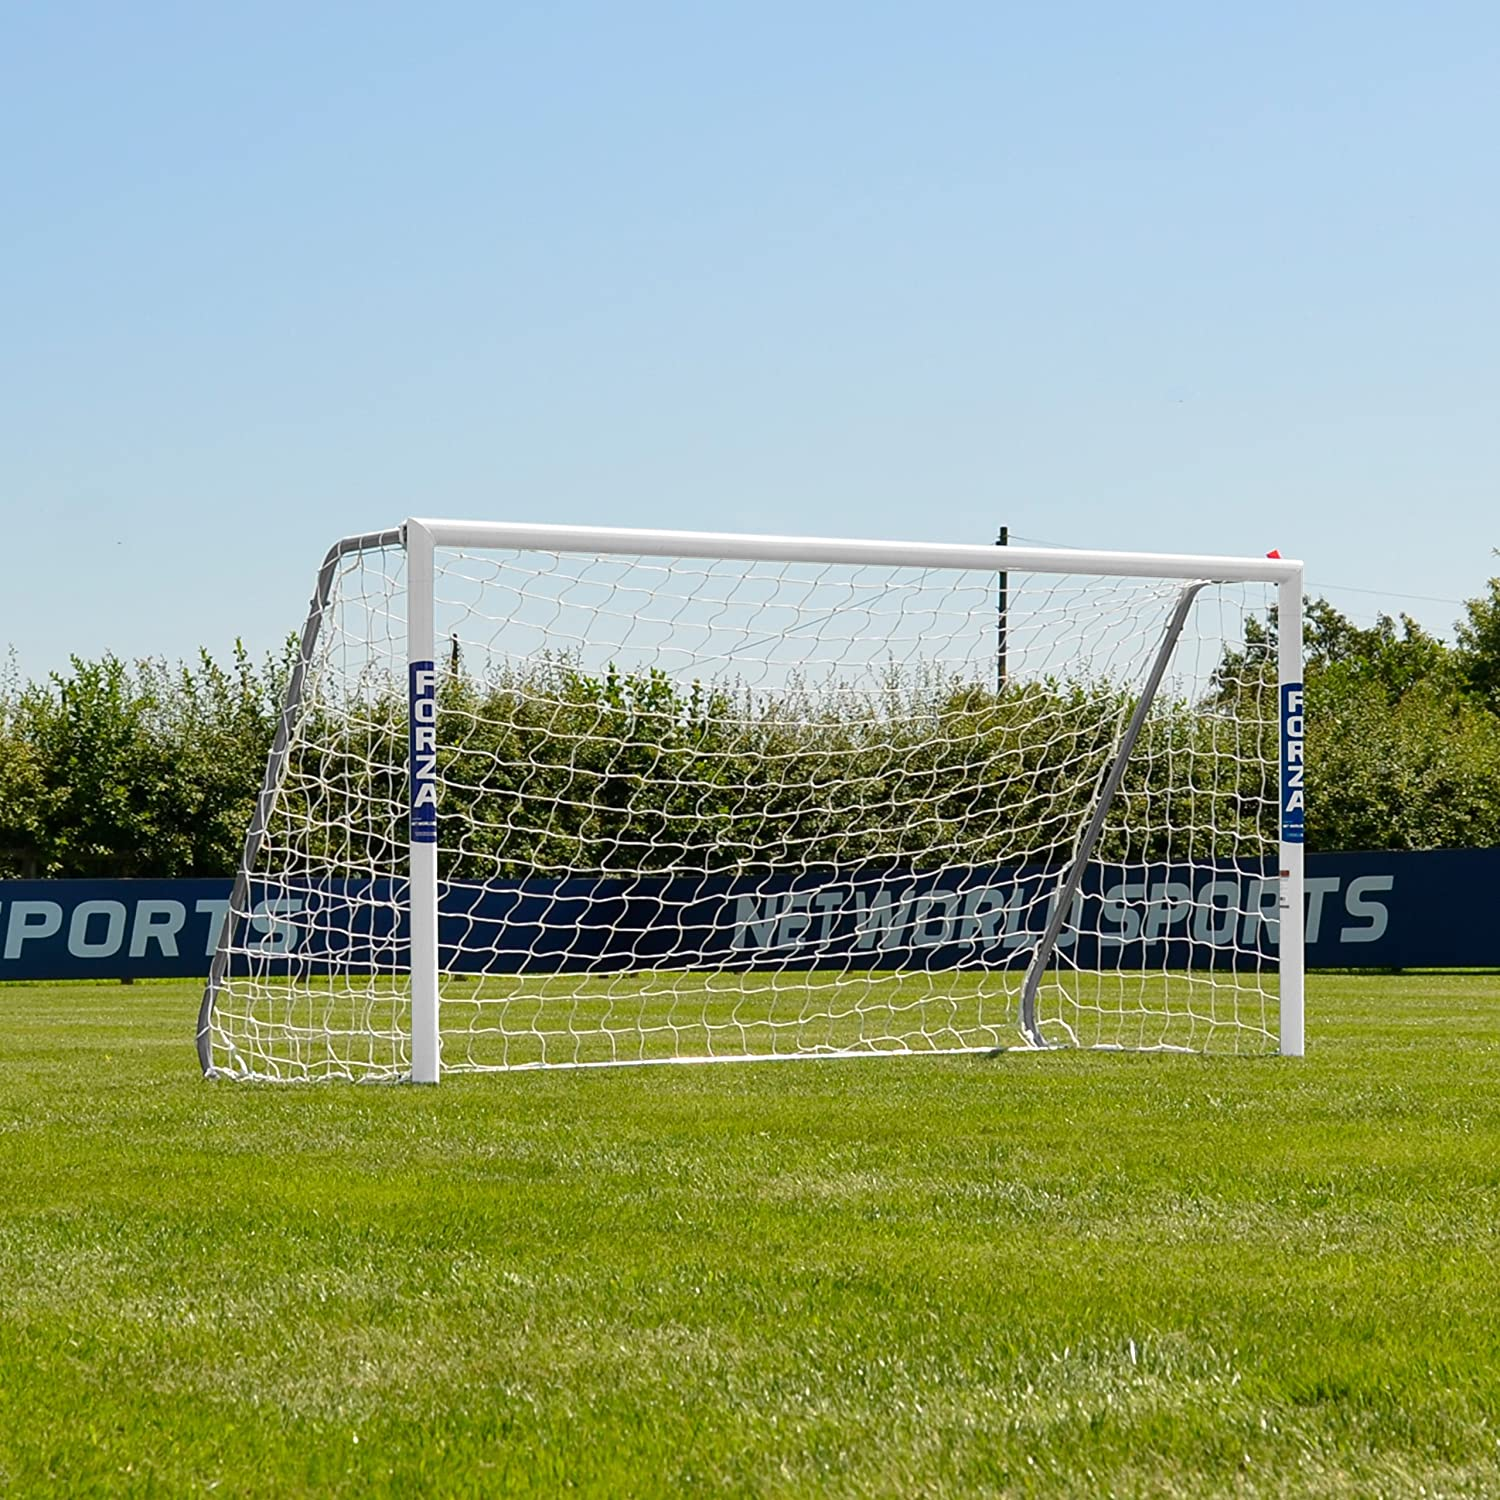 Forza alu60 Soccer Goal ( 8ft X 4 Ft ) (単一またはペア) (オプションターゲットシート) – Super StrongアルミSoccer Goal Perfect for Mini Soccer [ Net世界スポーツ] B0191MFV1U Single Goal & Target Sheet